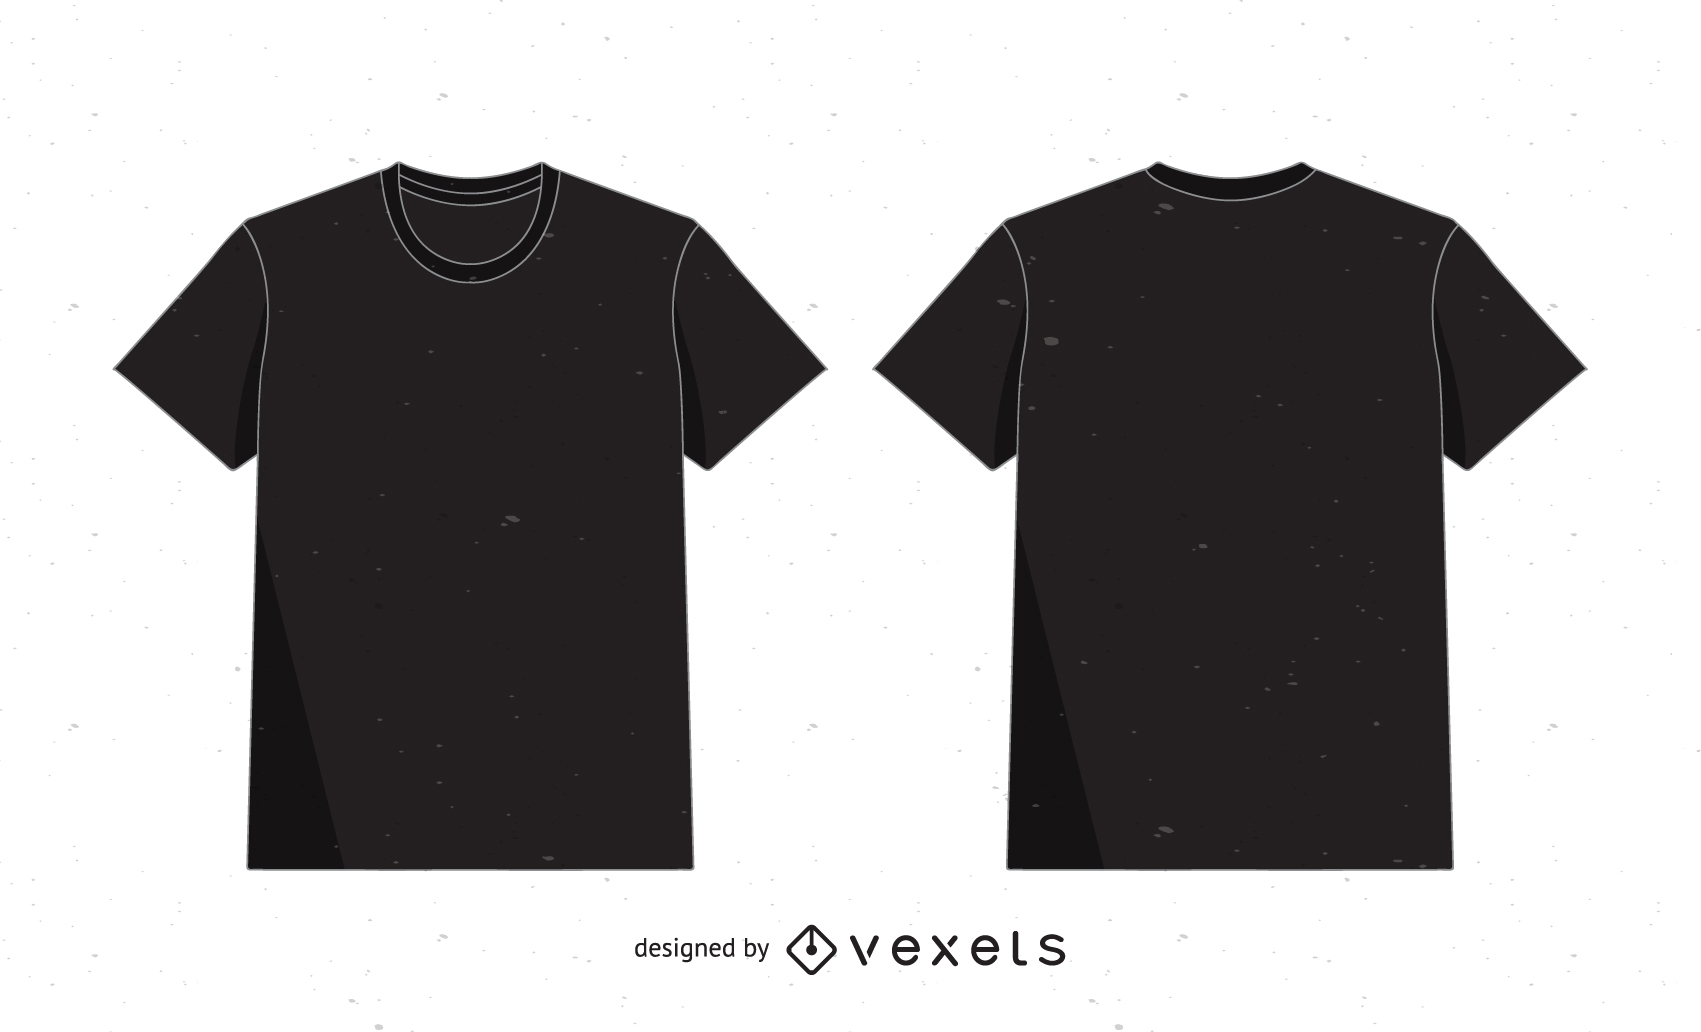 quality design 83d0f 6ef95 T shirt mockup template in black over white - Vector download